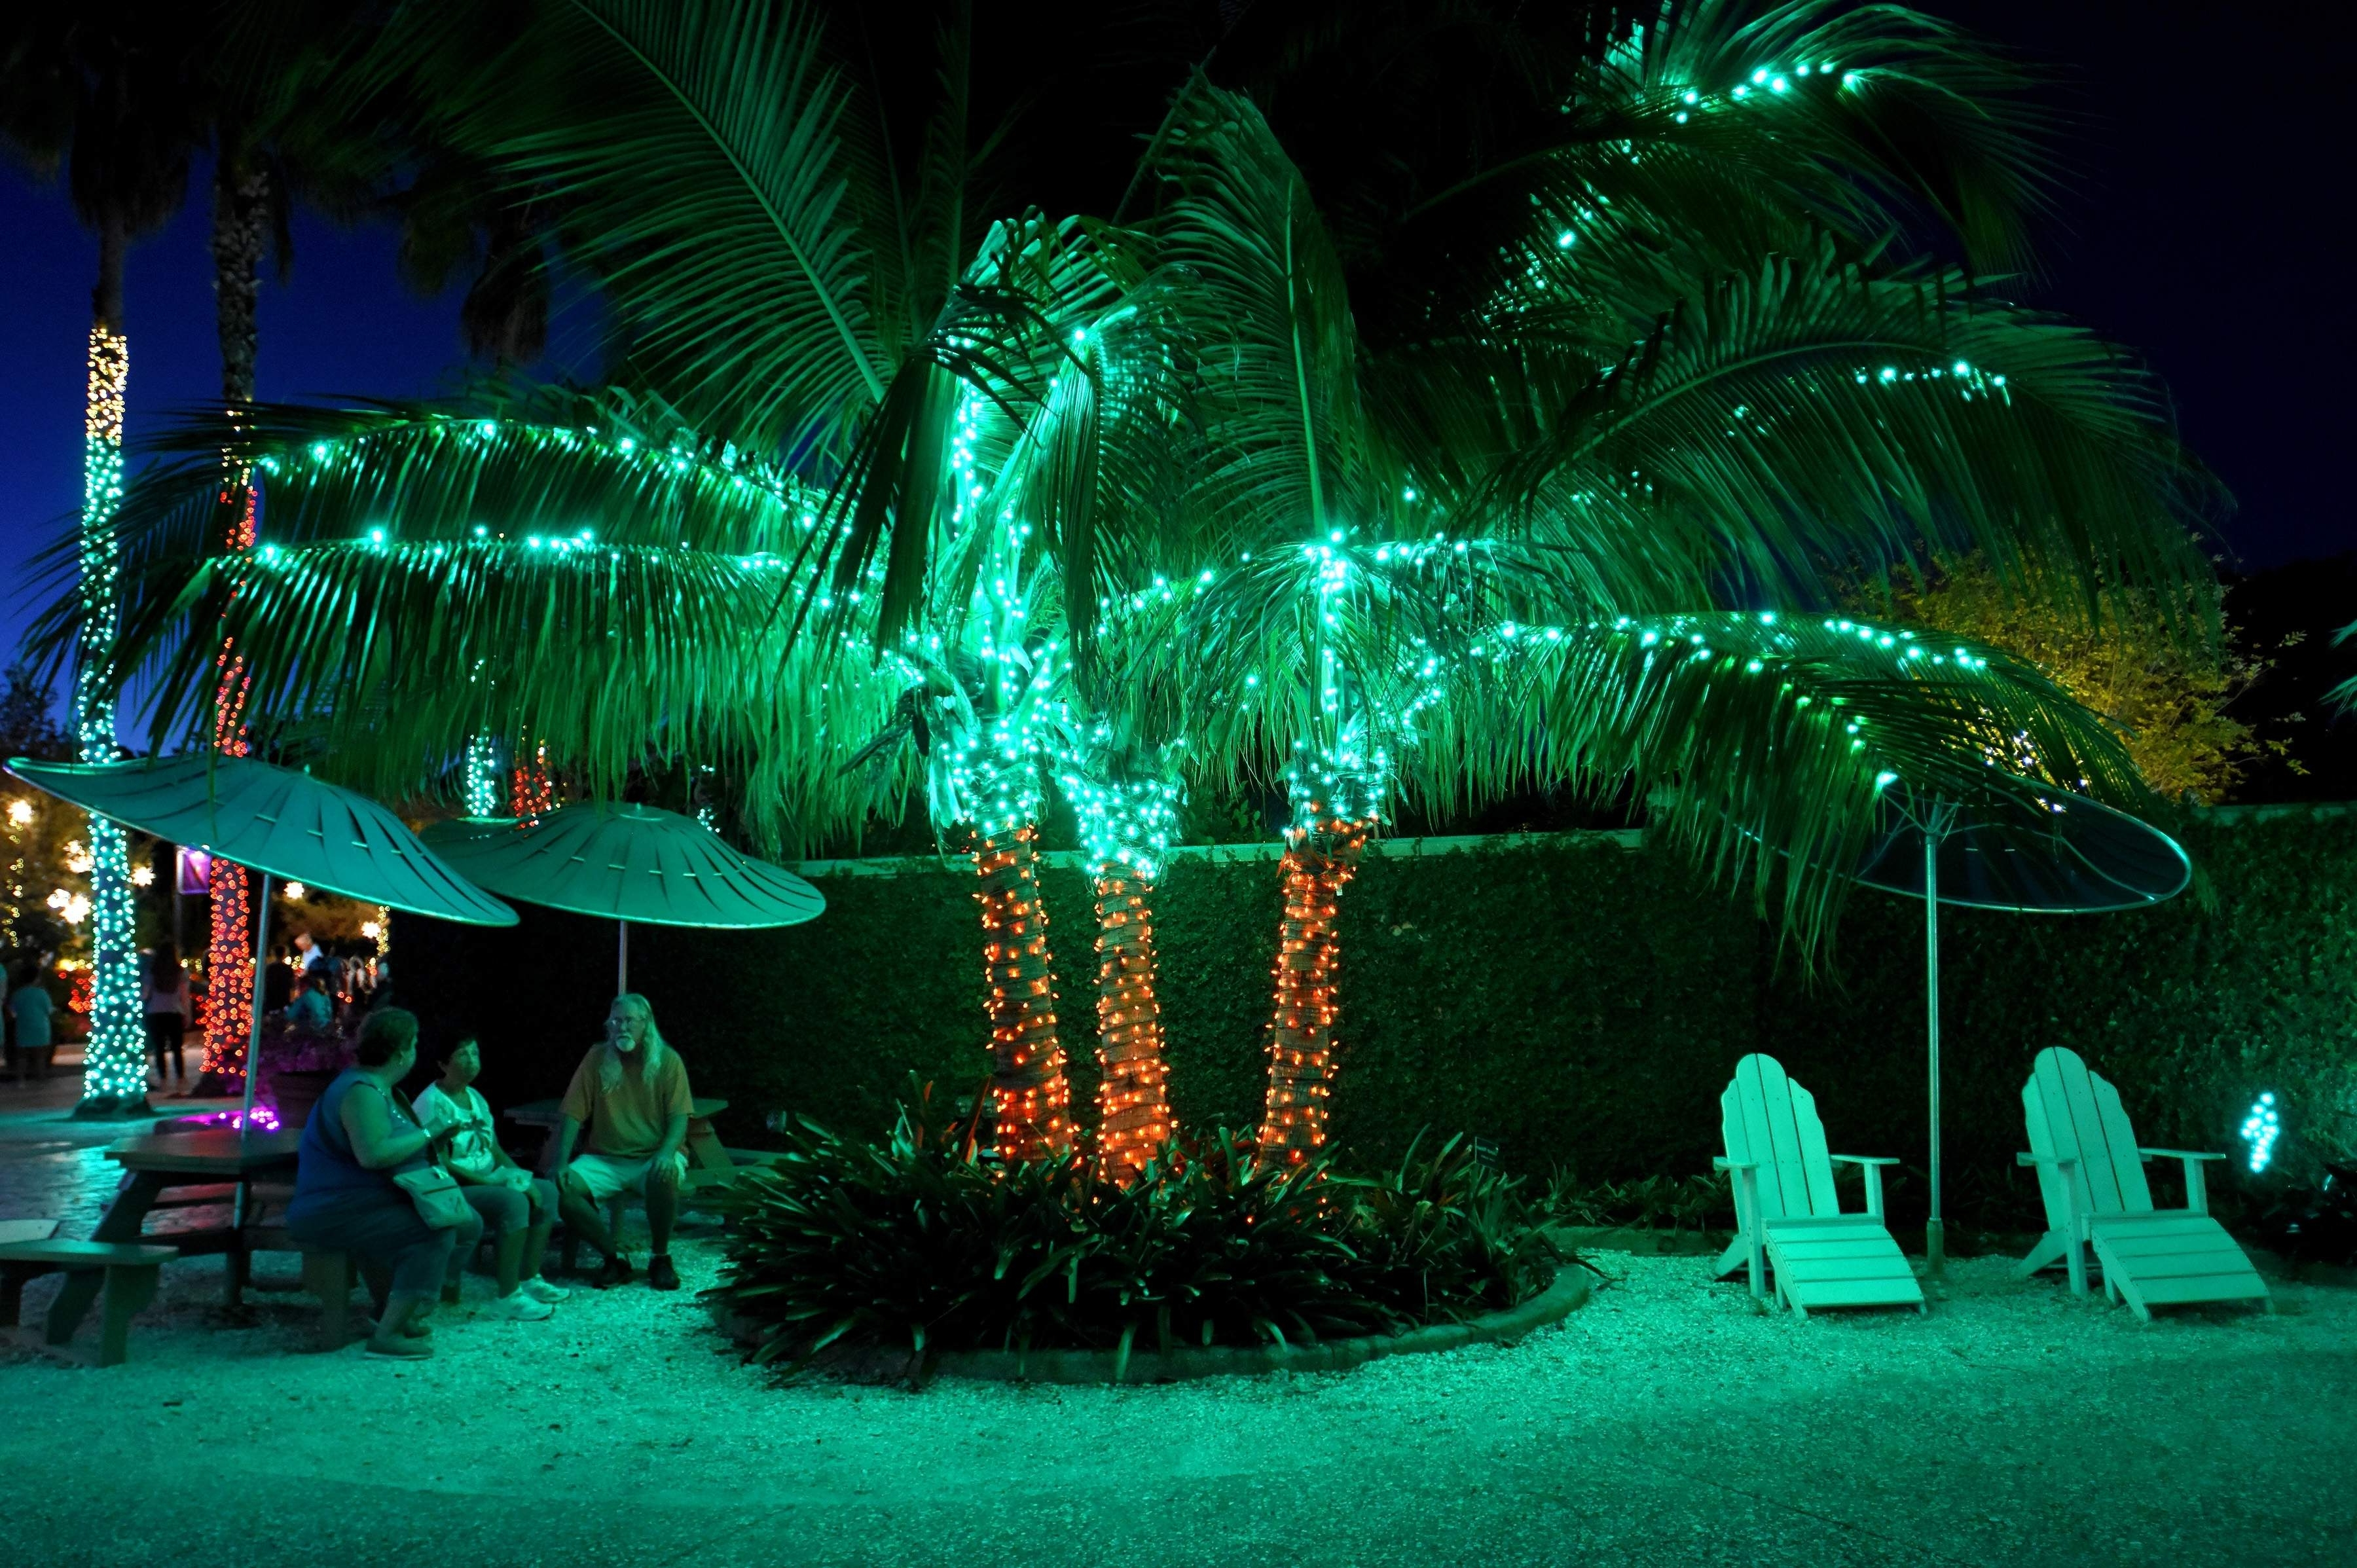 Famous Hundreds Of Thousands Of Lights On Display At Florida Botanical Within Botanical Garden Lights (View 10 of 20)